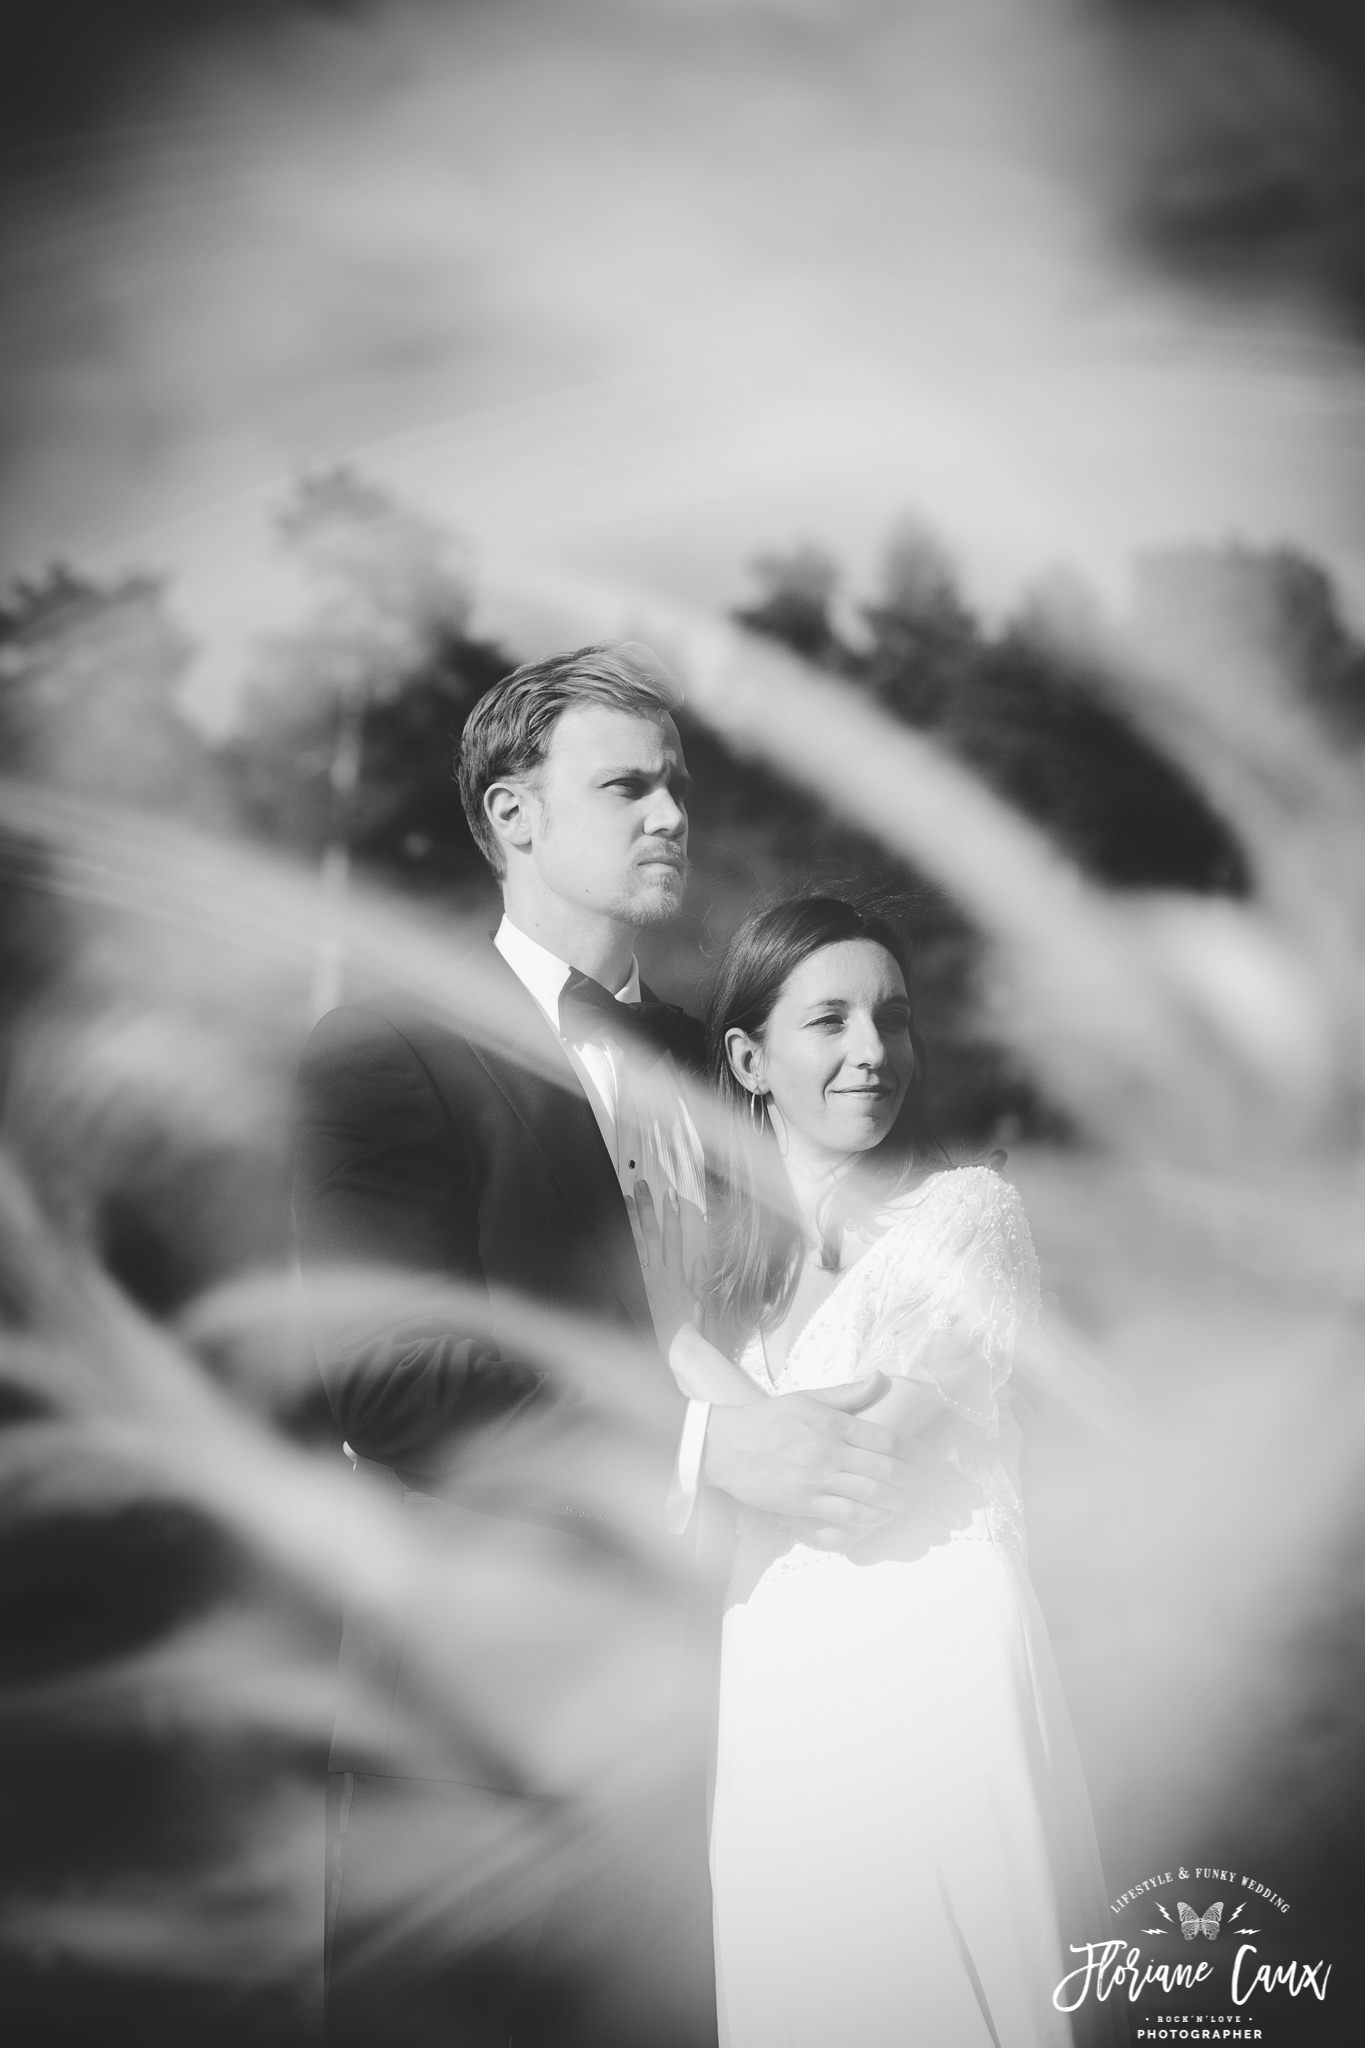 destination-wedding-photographer-oslo-norway-floriane-caux-76